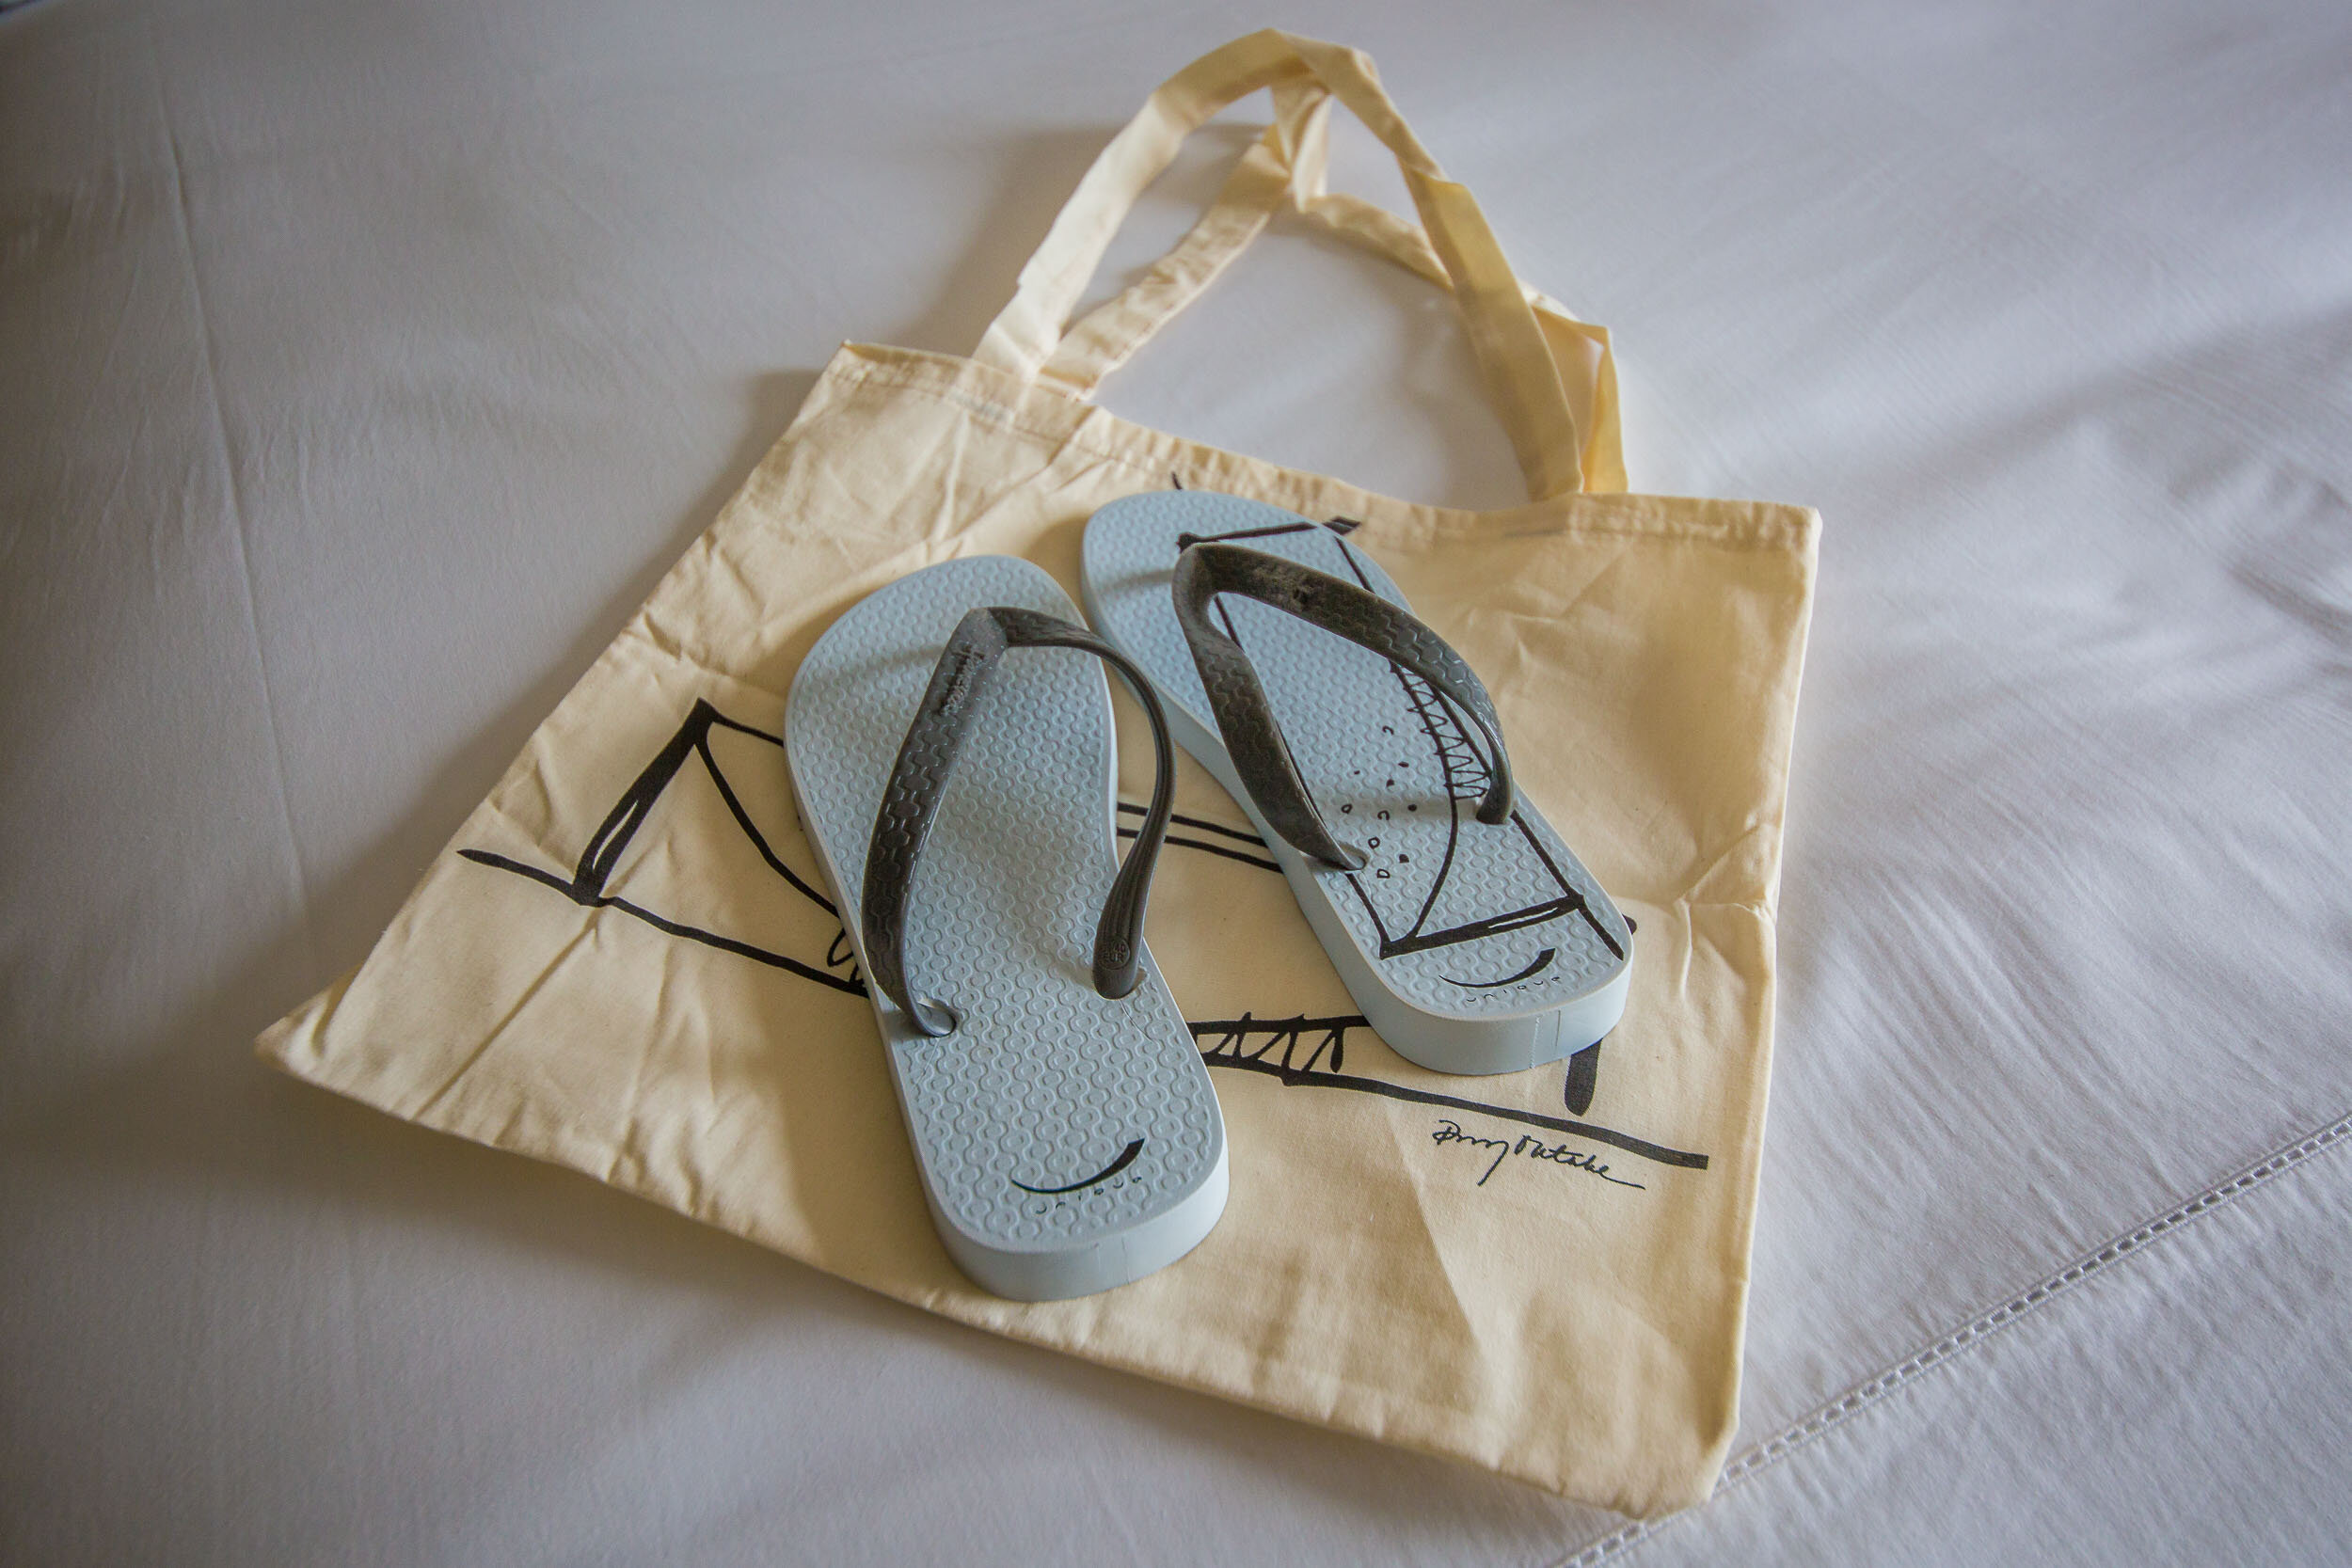 Thongs (flip flops) are provided for your use around the hotel, Hotel Unique, Sao Paulo, Brazil